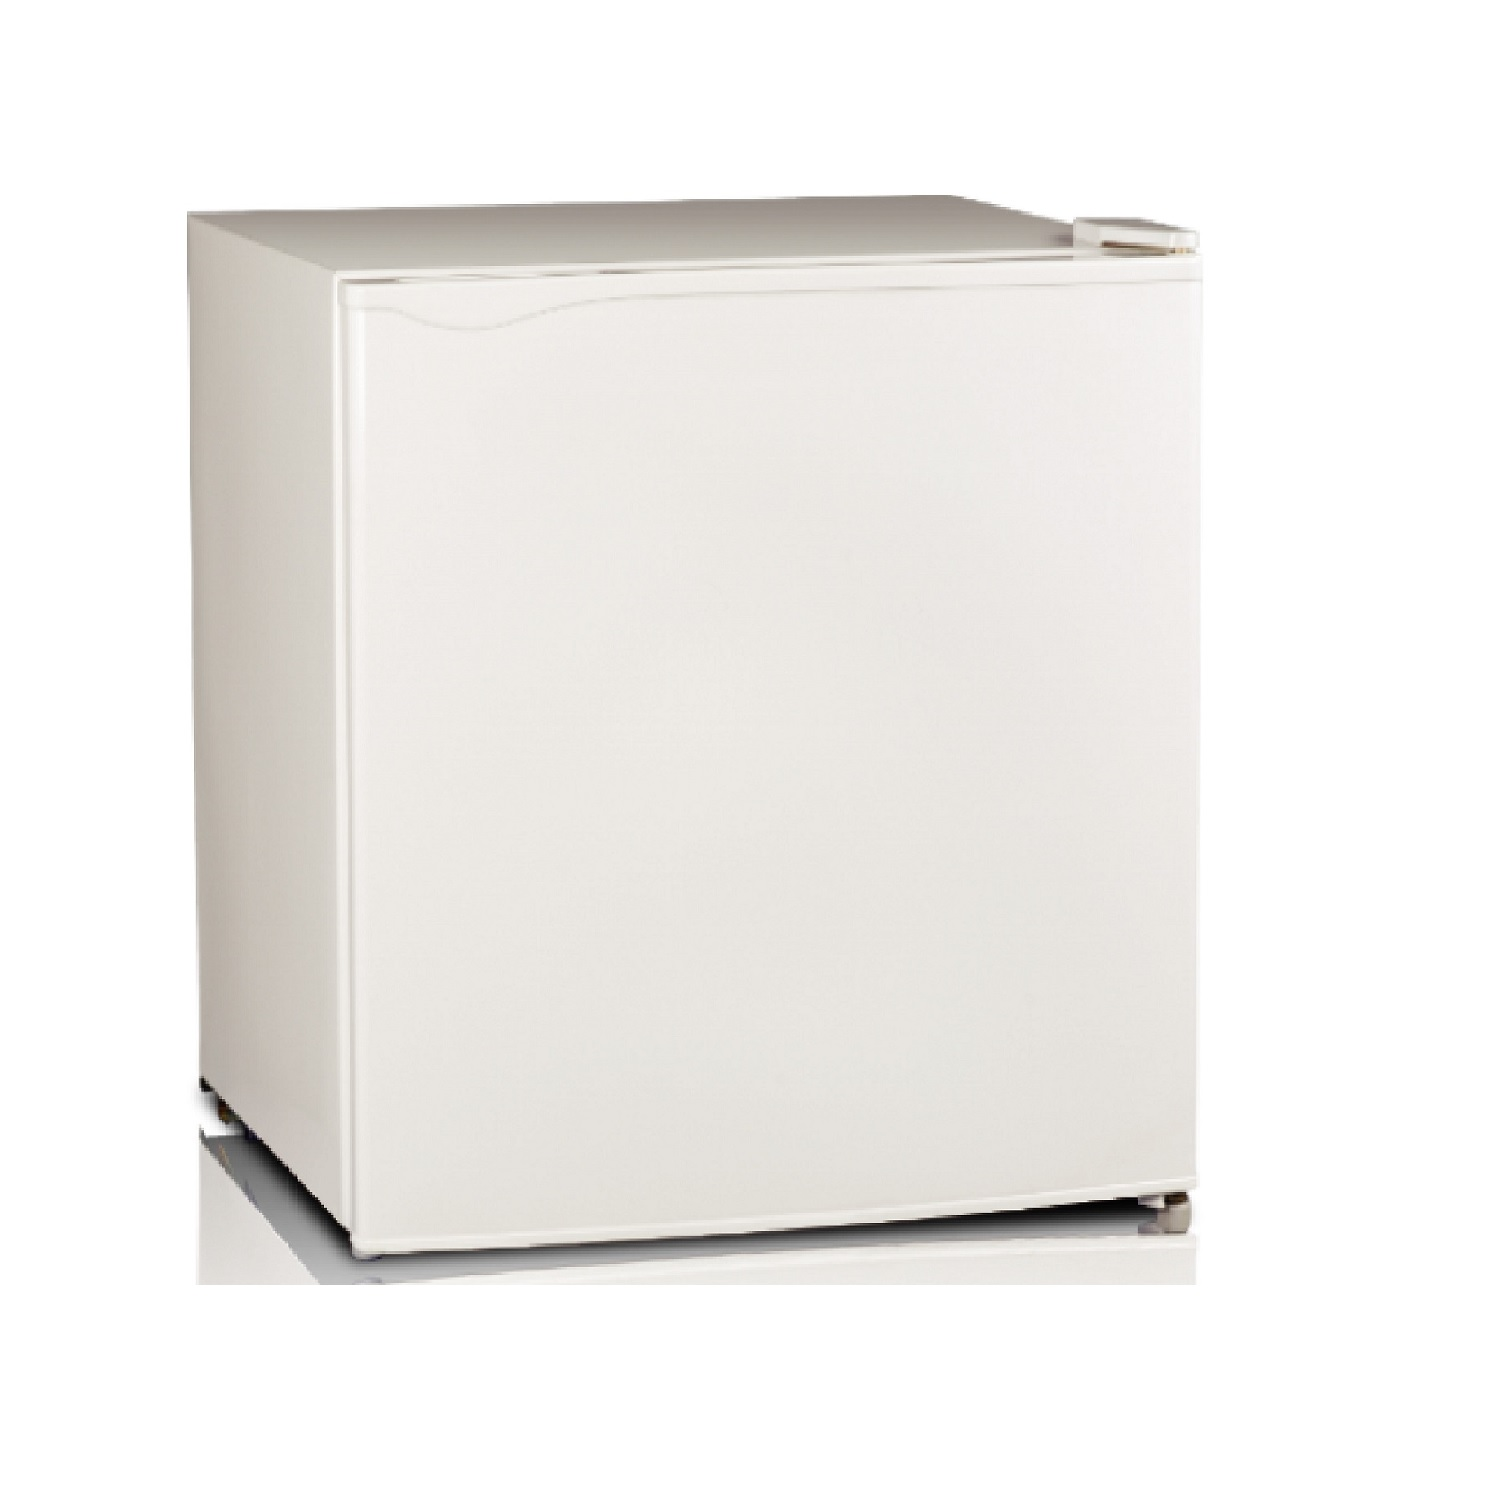 Equator Midea 1.1 cu.ft <br> Defrost Upright Freezer White